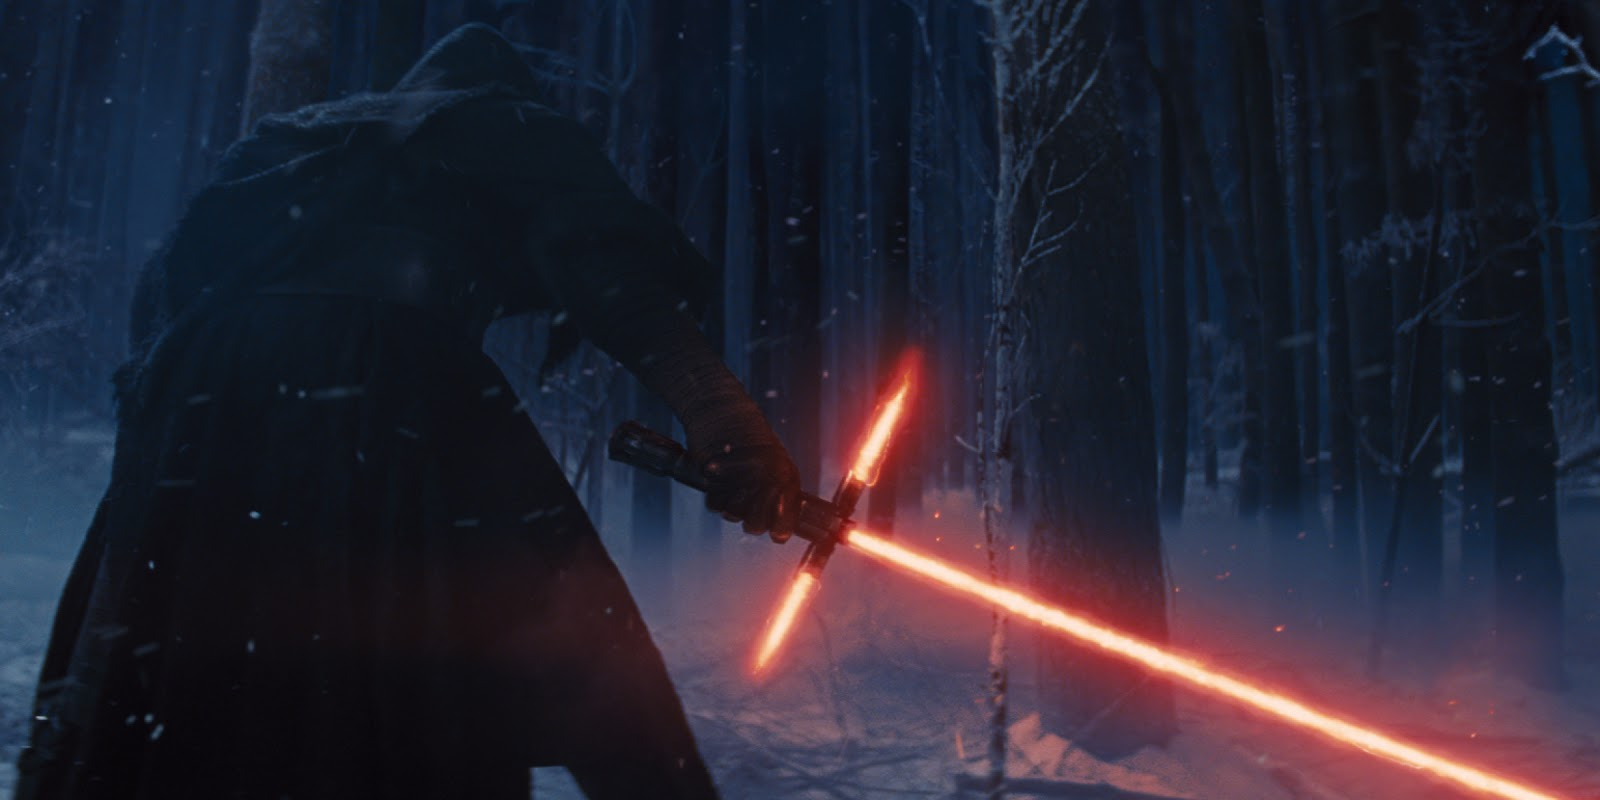 Rumor: Knights Of Ren Concept Art Revealed | The Star Wars